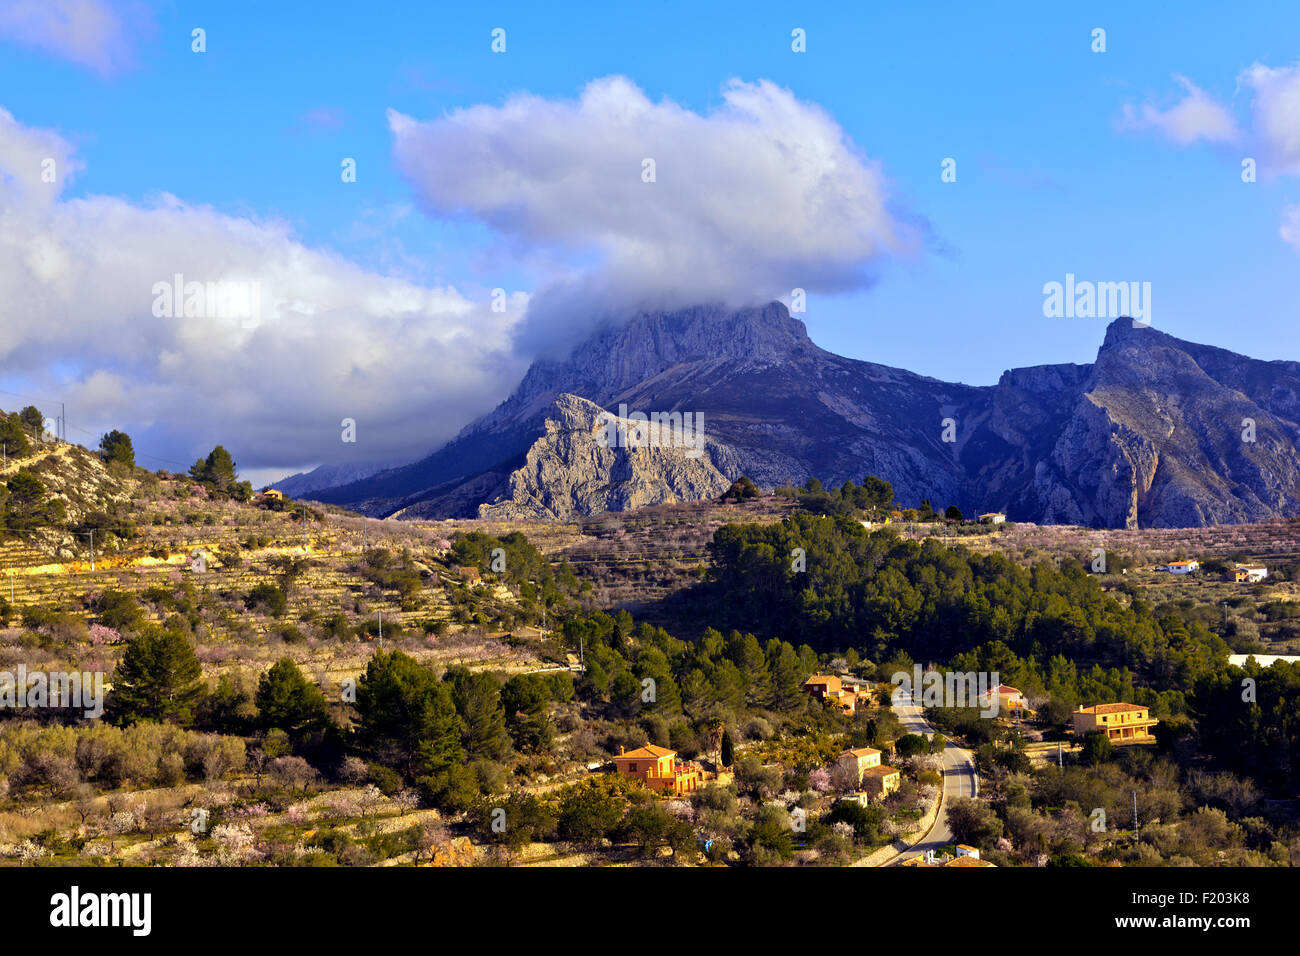 Cloud cover over Serra del Ferrer mountains near Tarbena in the Alicante Province of Spain - Stock Image